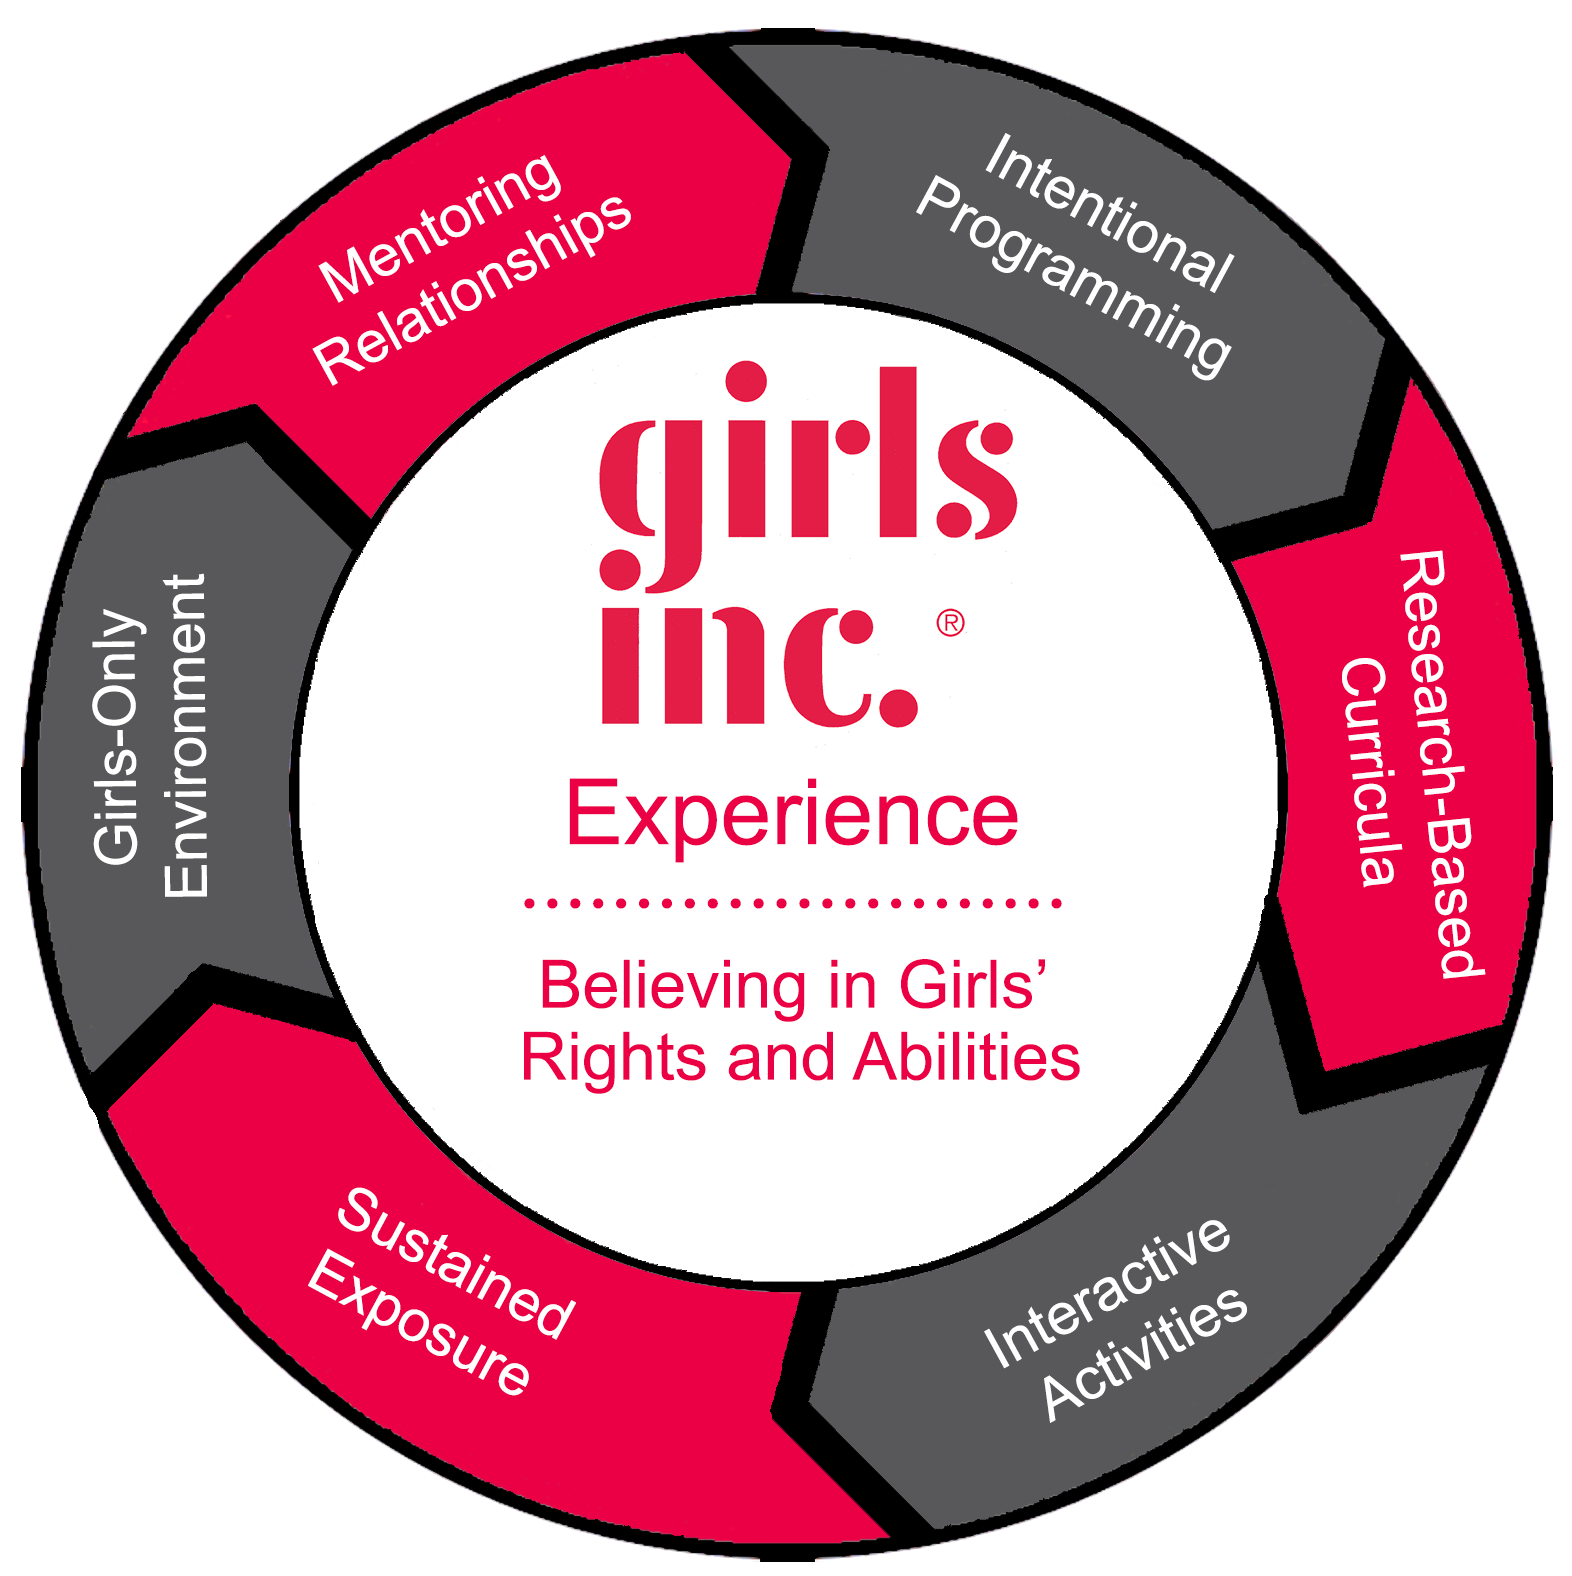 girls-inc-experience-wheel